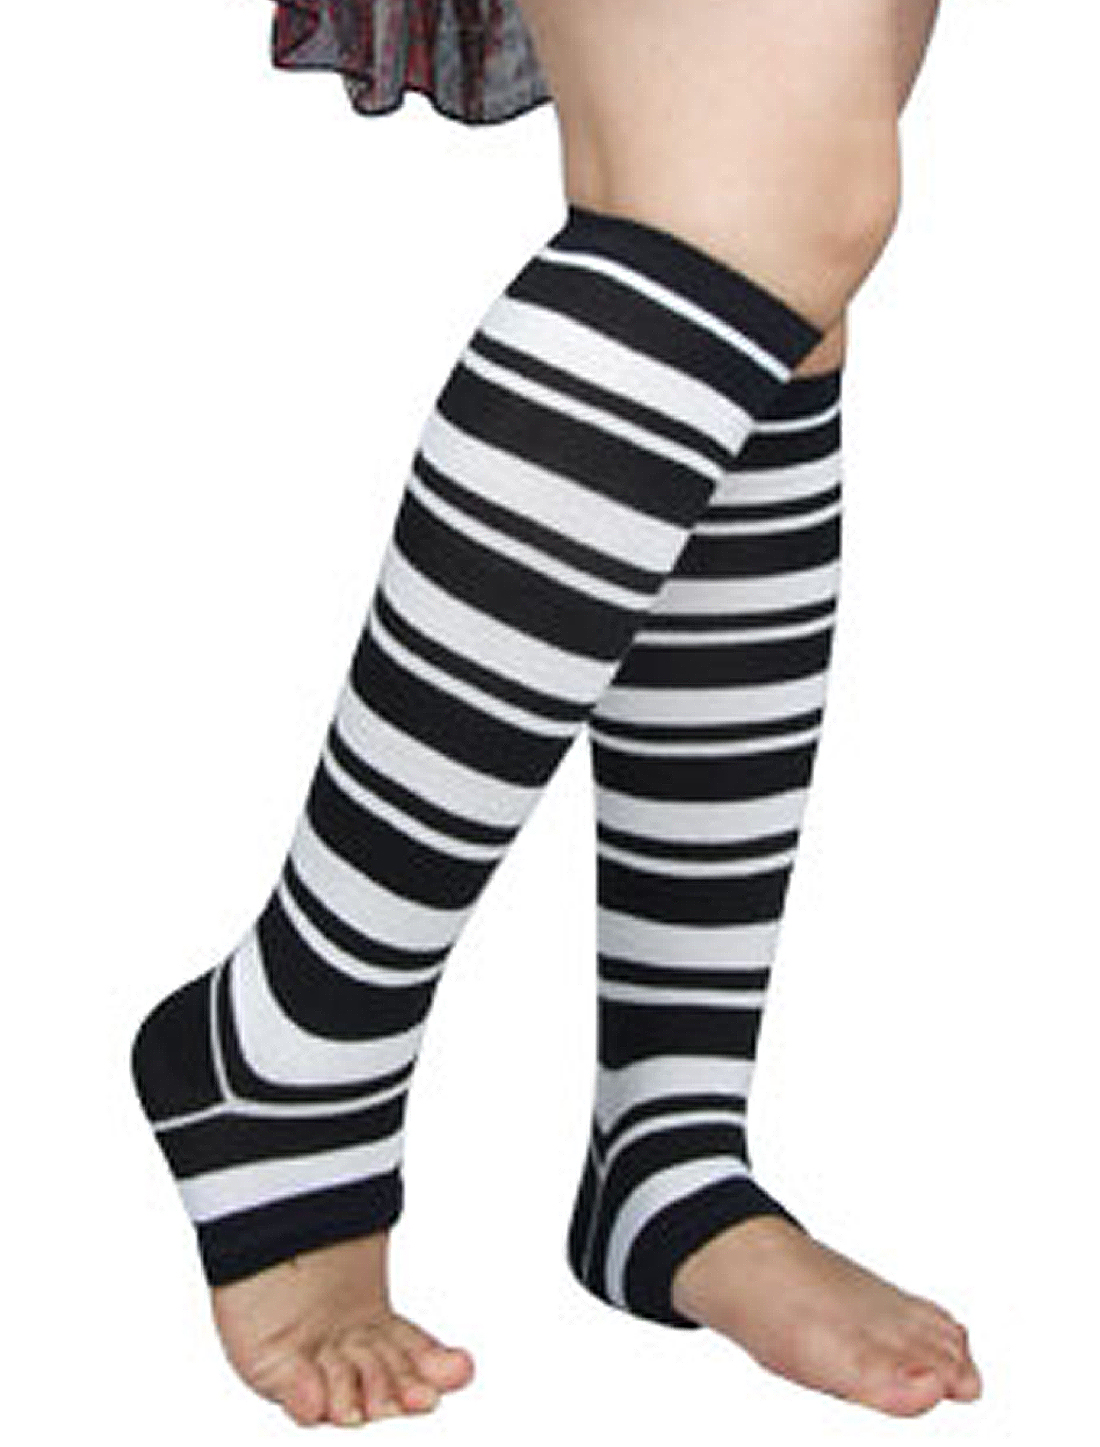 Toless Style Stretchy Black White Striped Leg Warmers